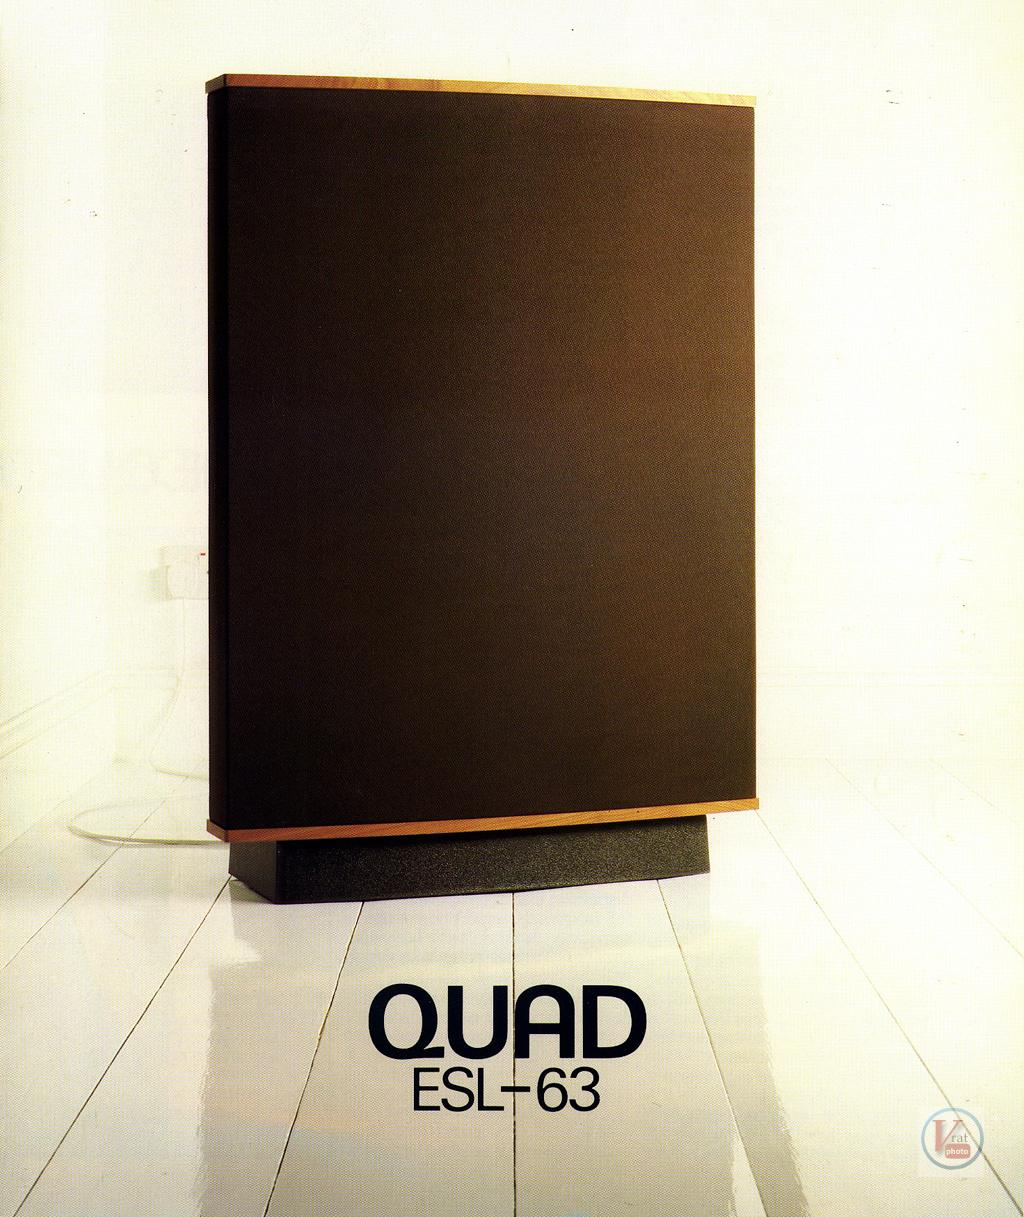 Quad Speakers 20